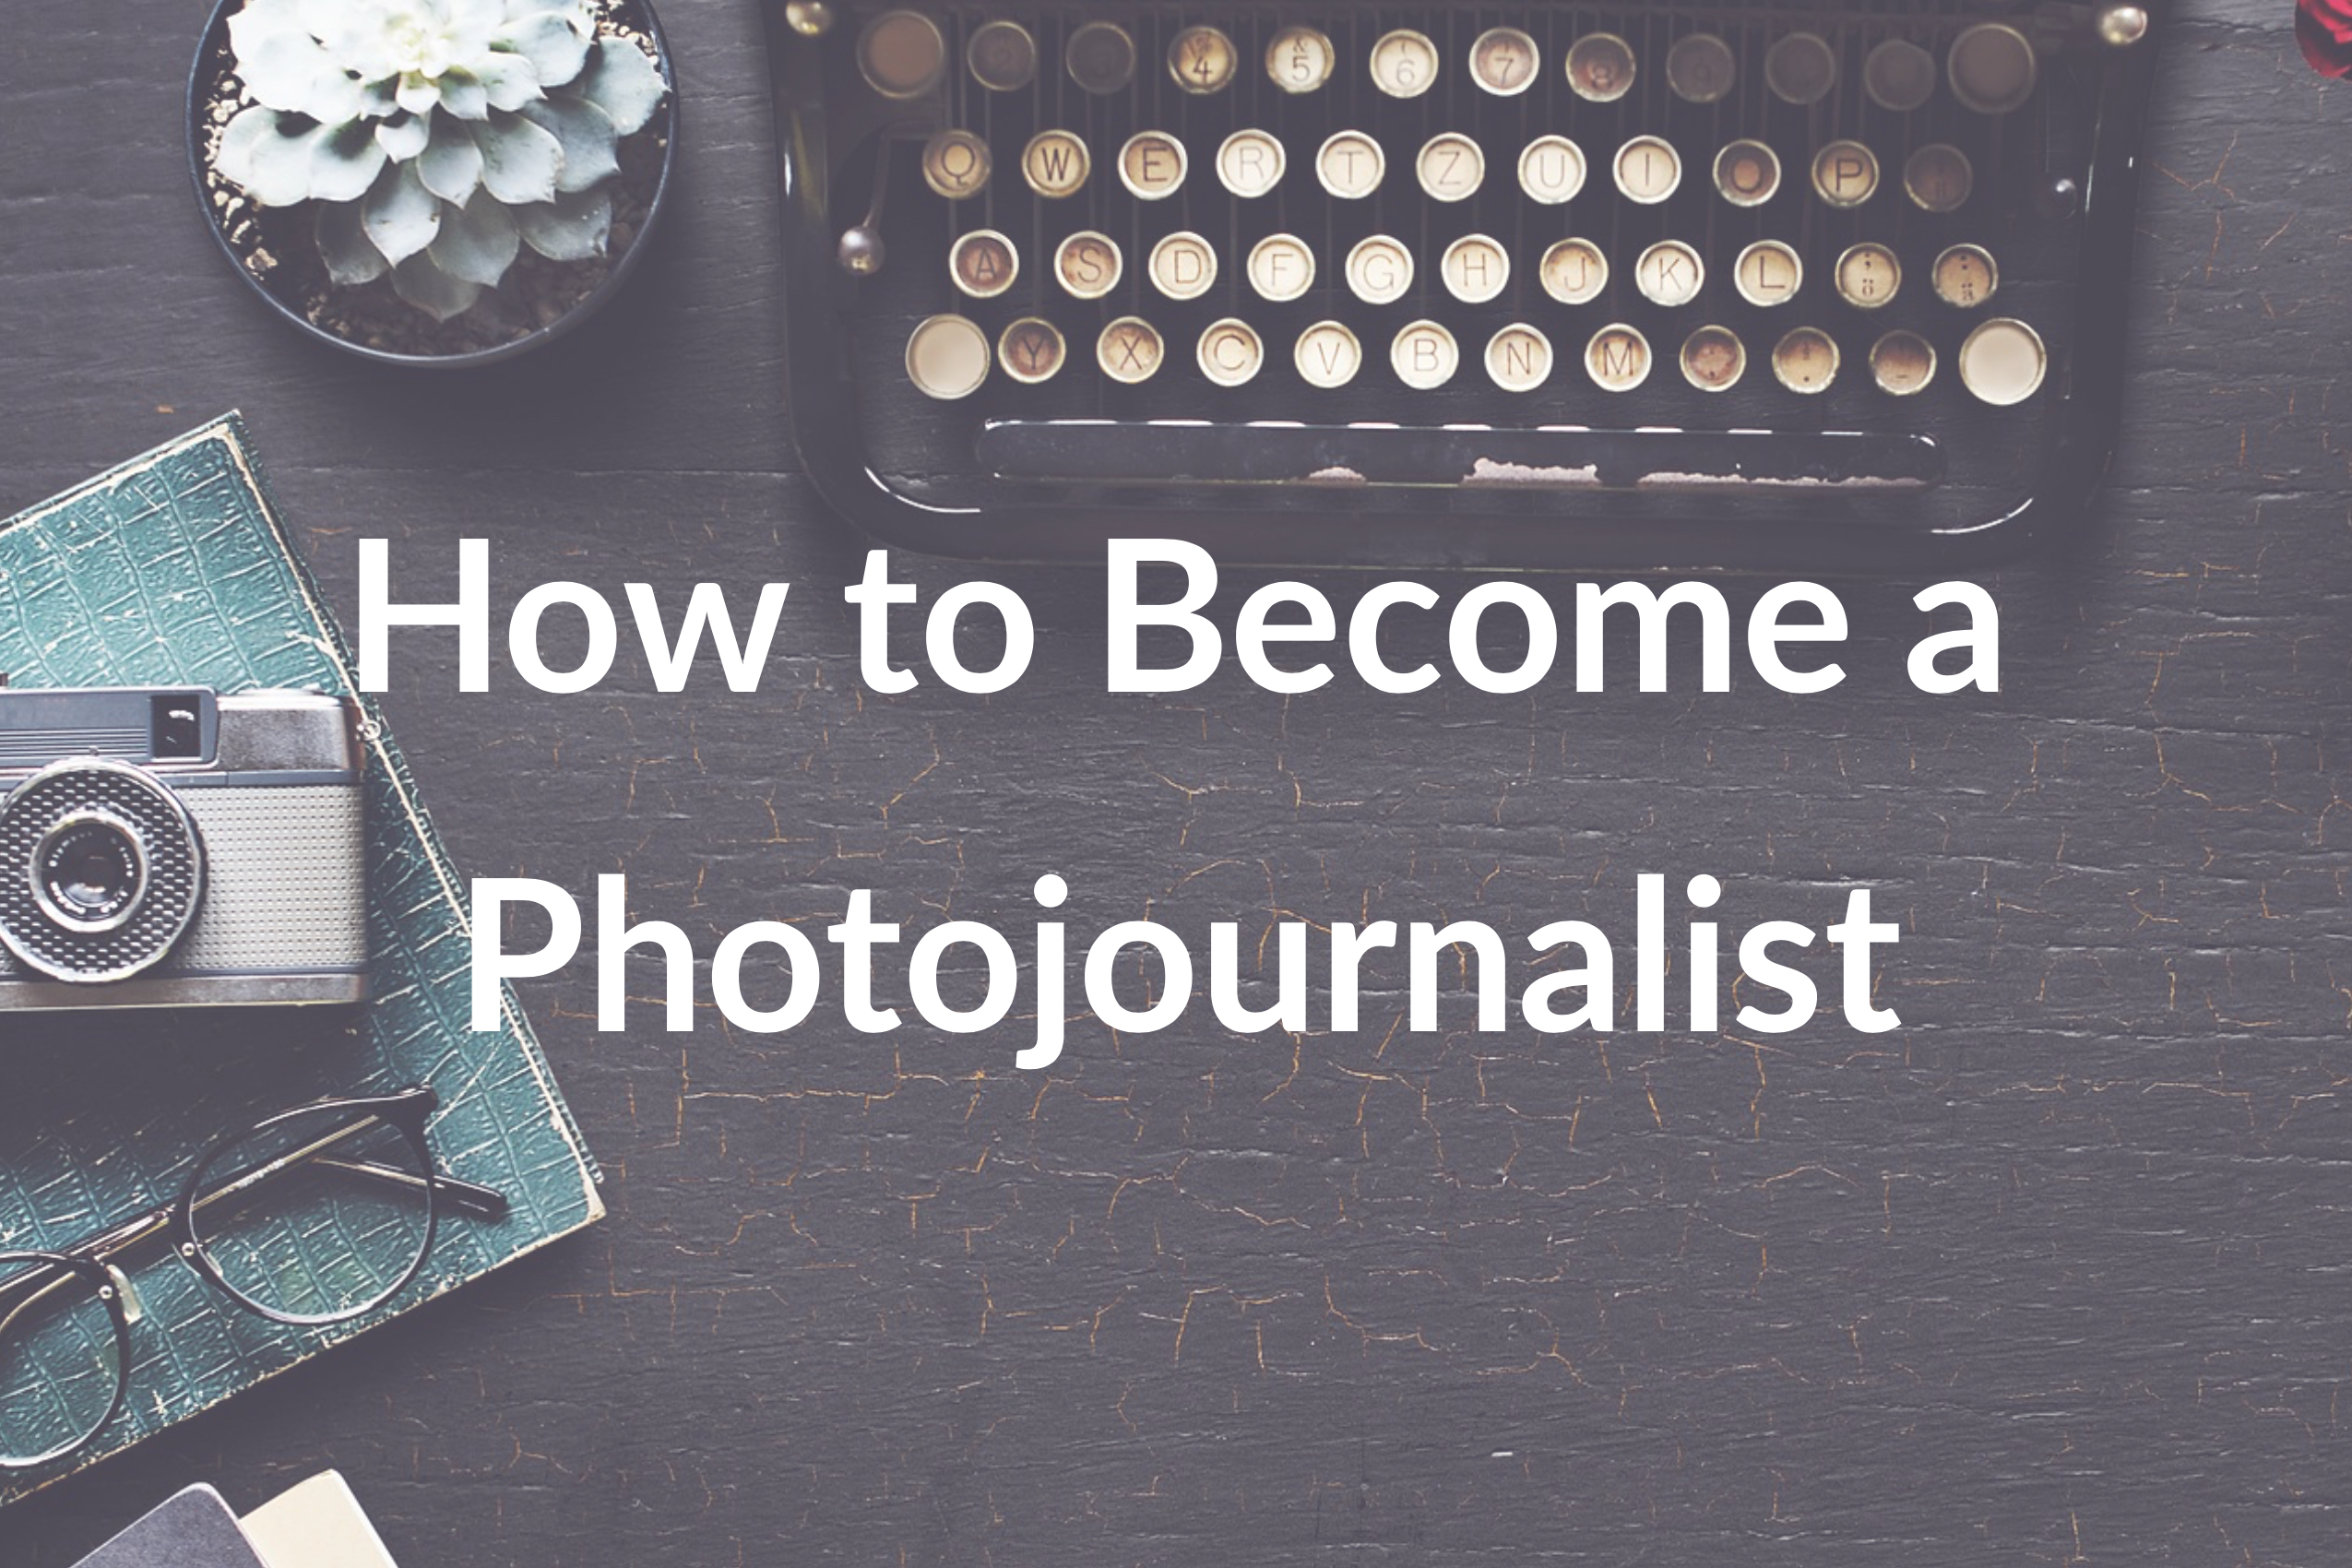 How to Become a Photojournalist: 8 Tips to Help You on Your Path